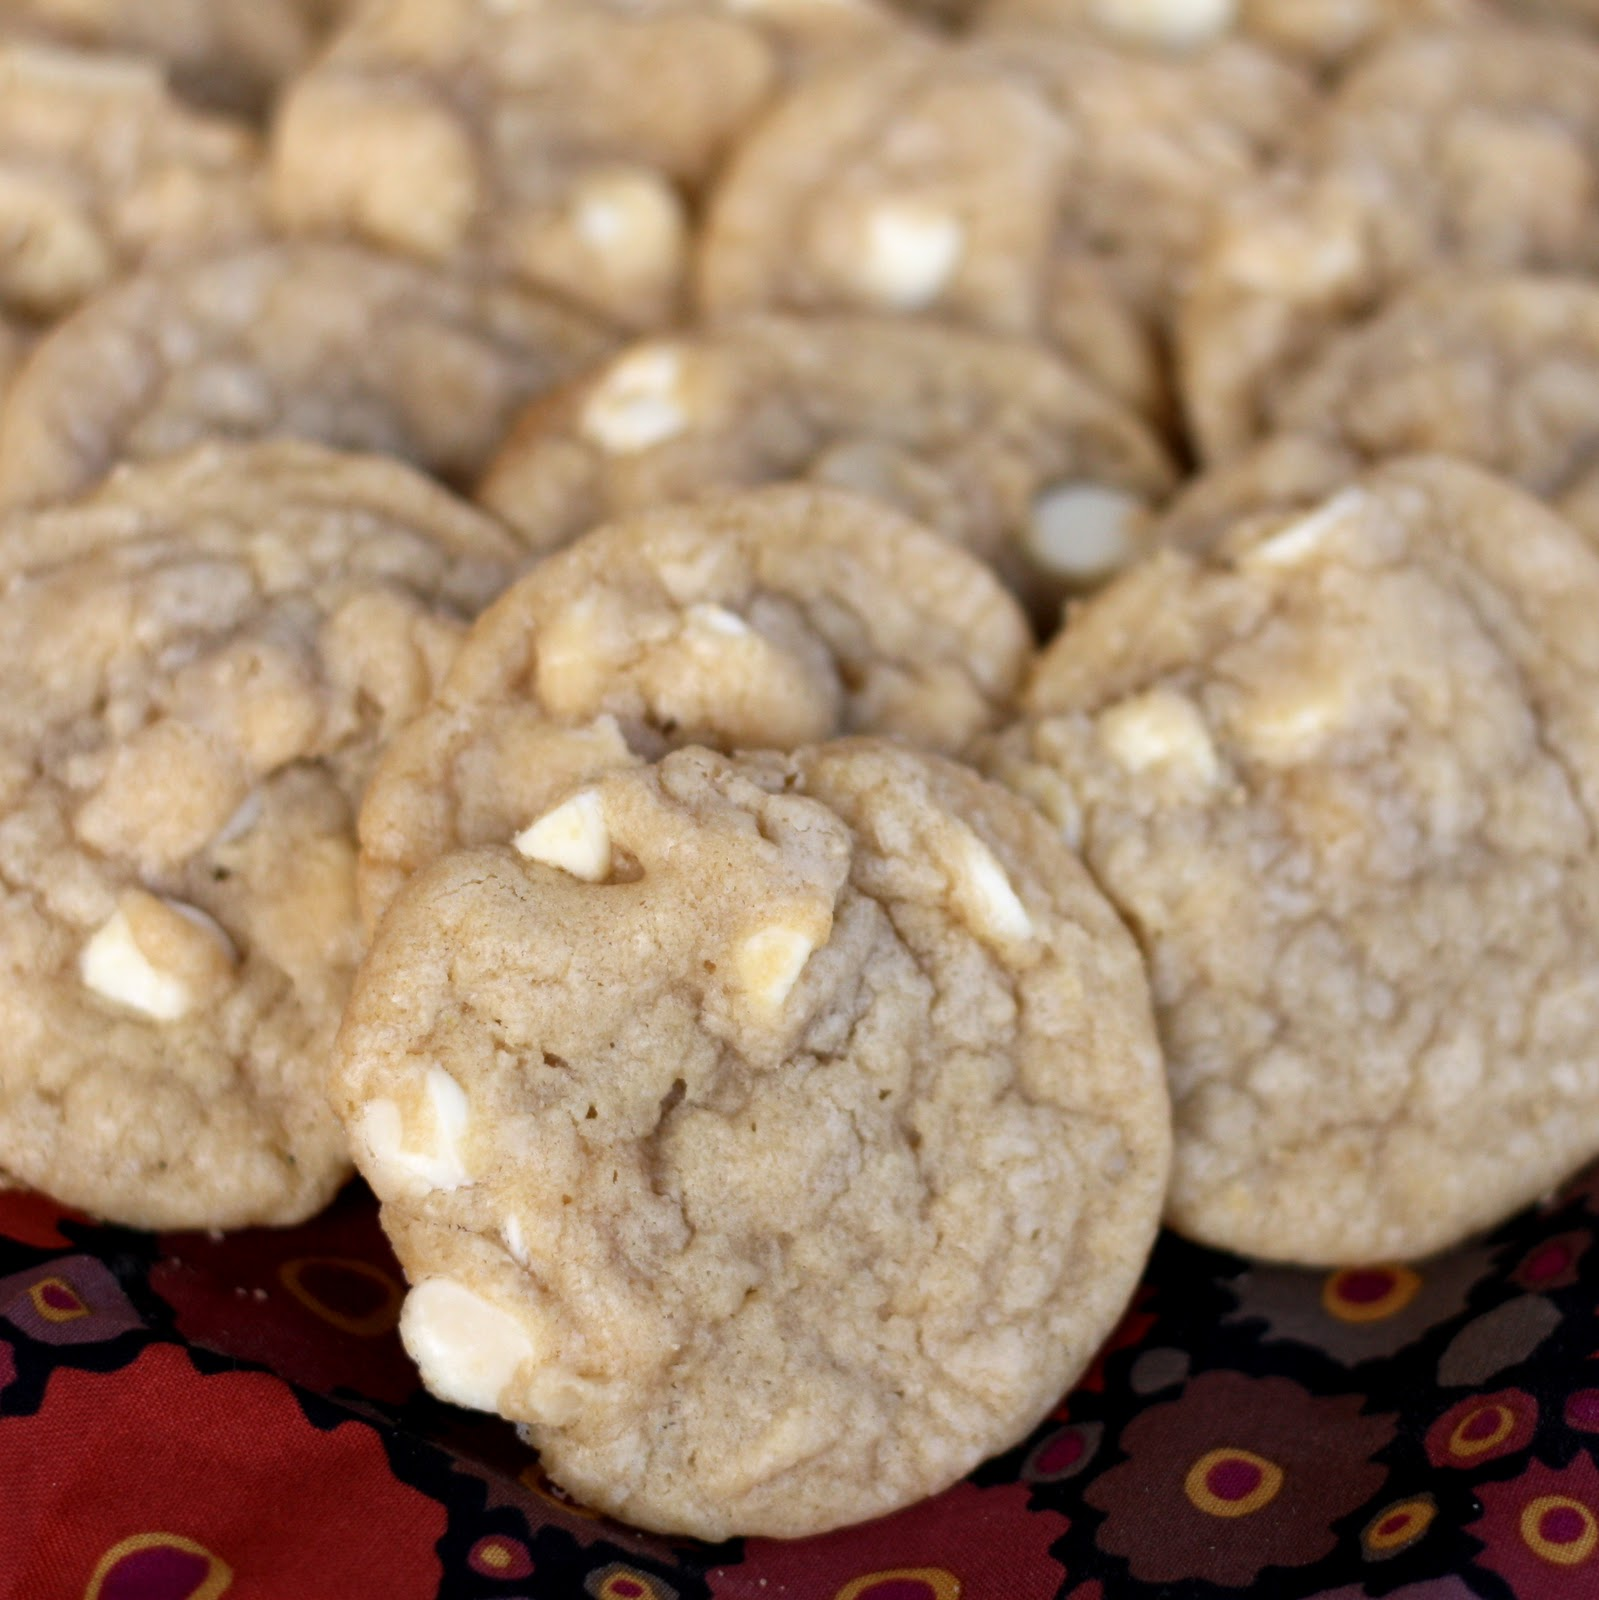 white chocolate macadamia nut cookies from crepes of wrath ingredients